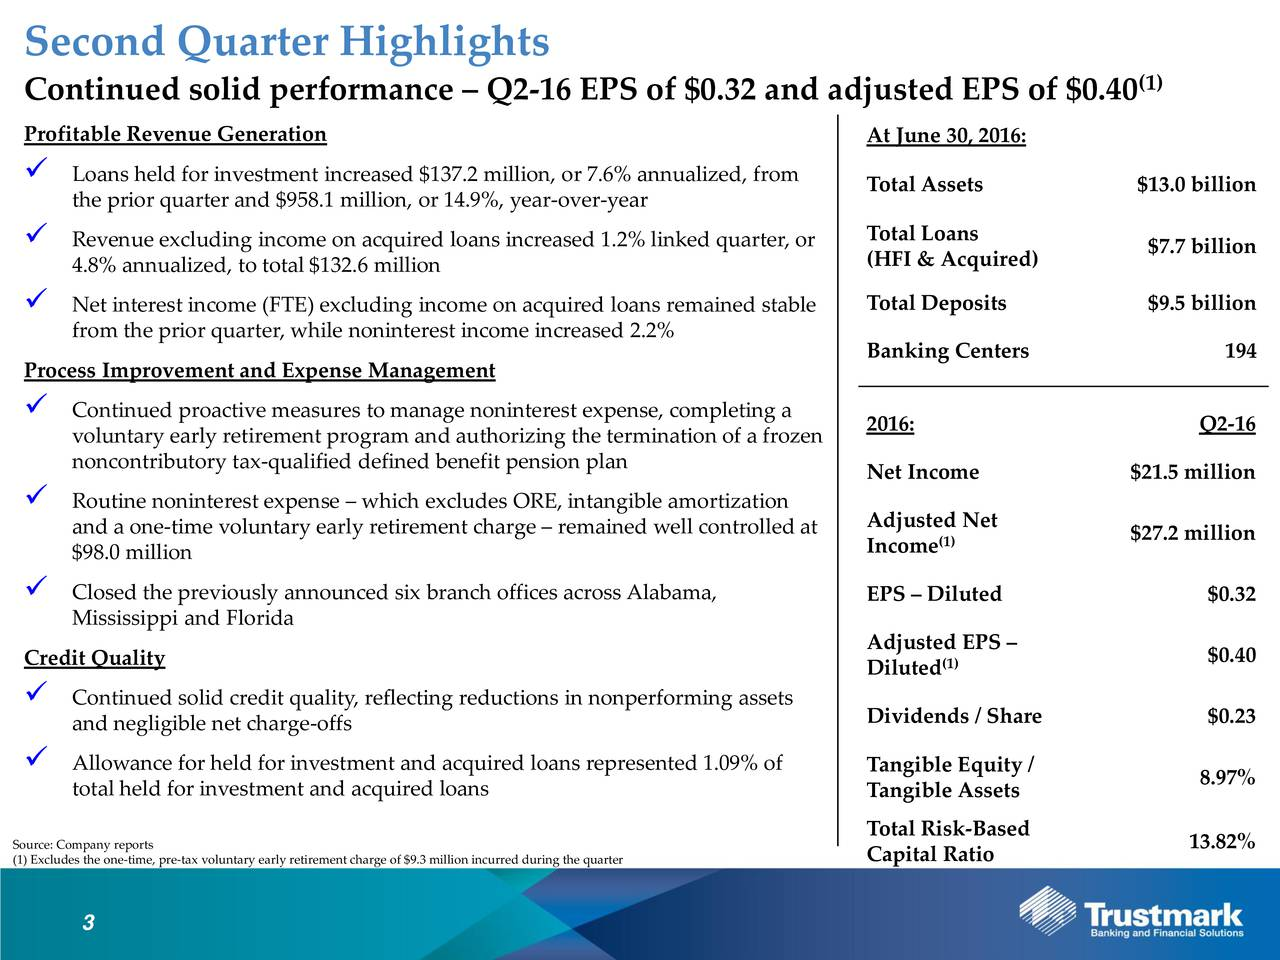 Continued solid performance  Q2-16 EPS of $0.32 and adjusted EPS of $0.40 (1) Profitable Revenue Generation At June 30, 2016: Loans held for investment increased $137.2 million, or 7.6% annualized,Total Assets $13.0 billion the prior quarter and $958.1 million, or 14.9%, year-over-year Total Loans Revenue excluding income on acquired loans increased 1.2% linked quarter, or $7.7 billion 4.8% annualized, to total $132.6 million (HFI & Acquired) Net interest income (FTE) excluding income on acquired loans remained stable Deposits $9.5 billion from the prior quarter, while noninterest income increased 2.2% Process Improvement and Expense Management Banking Centers 194 Continued proactive measures to manage noninterest expense, completing a voluntary early retirement program and authorizing the termination of a frozen Q2-16 noncontributory tax-qualified defined benefit pension plan Net Income $21.5 million Routine noninterest expense  which excludes ORE, intangible amortization and a one-time voluntary early retirement charge  remained well controlled atd Net $98.0 million Income(1) $27.2 million Closed the previously announced six branch offices across Alabama, EPS  Diluted $0.32 Mississippi and Florida Adjusted EPS Credit Quality (1) $0.40 Diluted Continued solid credit quality, reflecting reductions in nonperforming assets and negligible net charge-offs Dividends / Share $0.23 Allowance for held for investment and acquired loans represented 1.09% Tangible Equity / 8.97% total held for investment and acquired loans Tangible Assets Source: Company reports Total Risk-Based 13.82% (1) Excludes the one-time, pre-tax voluntary early retirement charge of $9.3 million incurred during the quarter 3